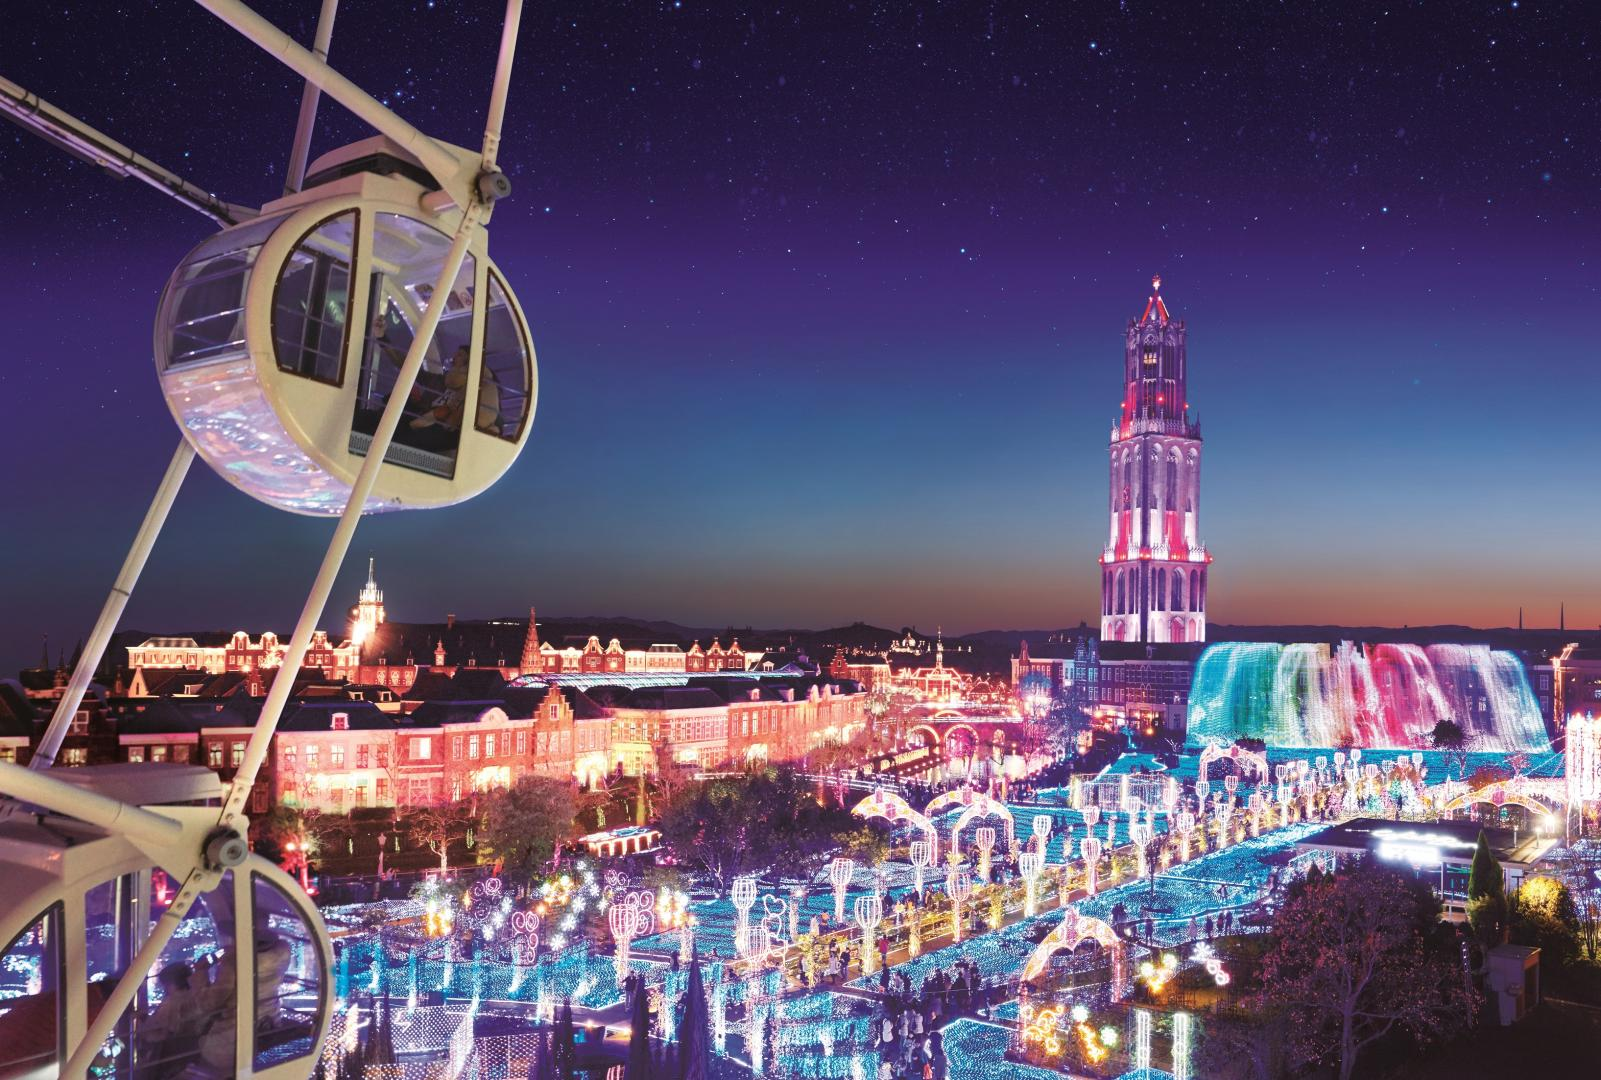 Huis Ten Bosch - Kingdom of Light-8